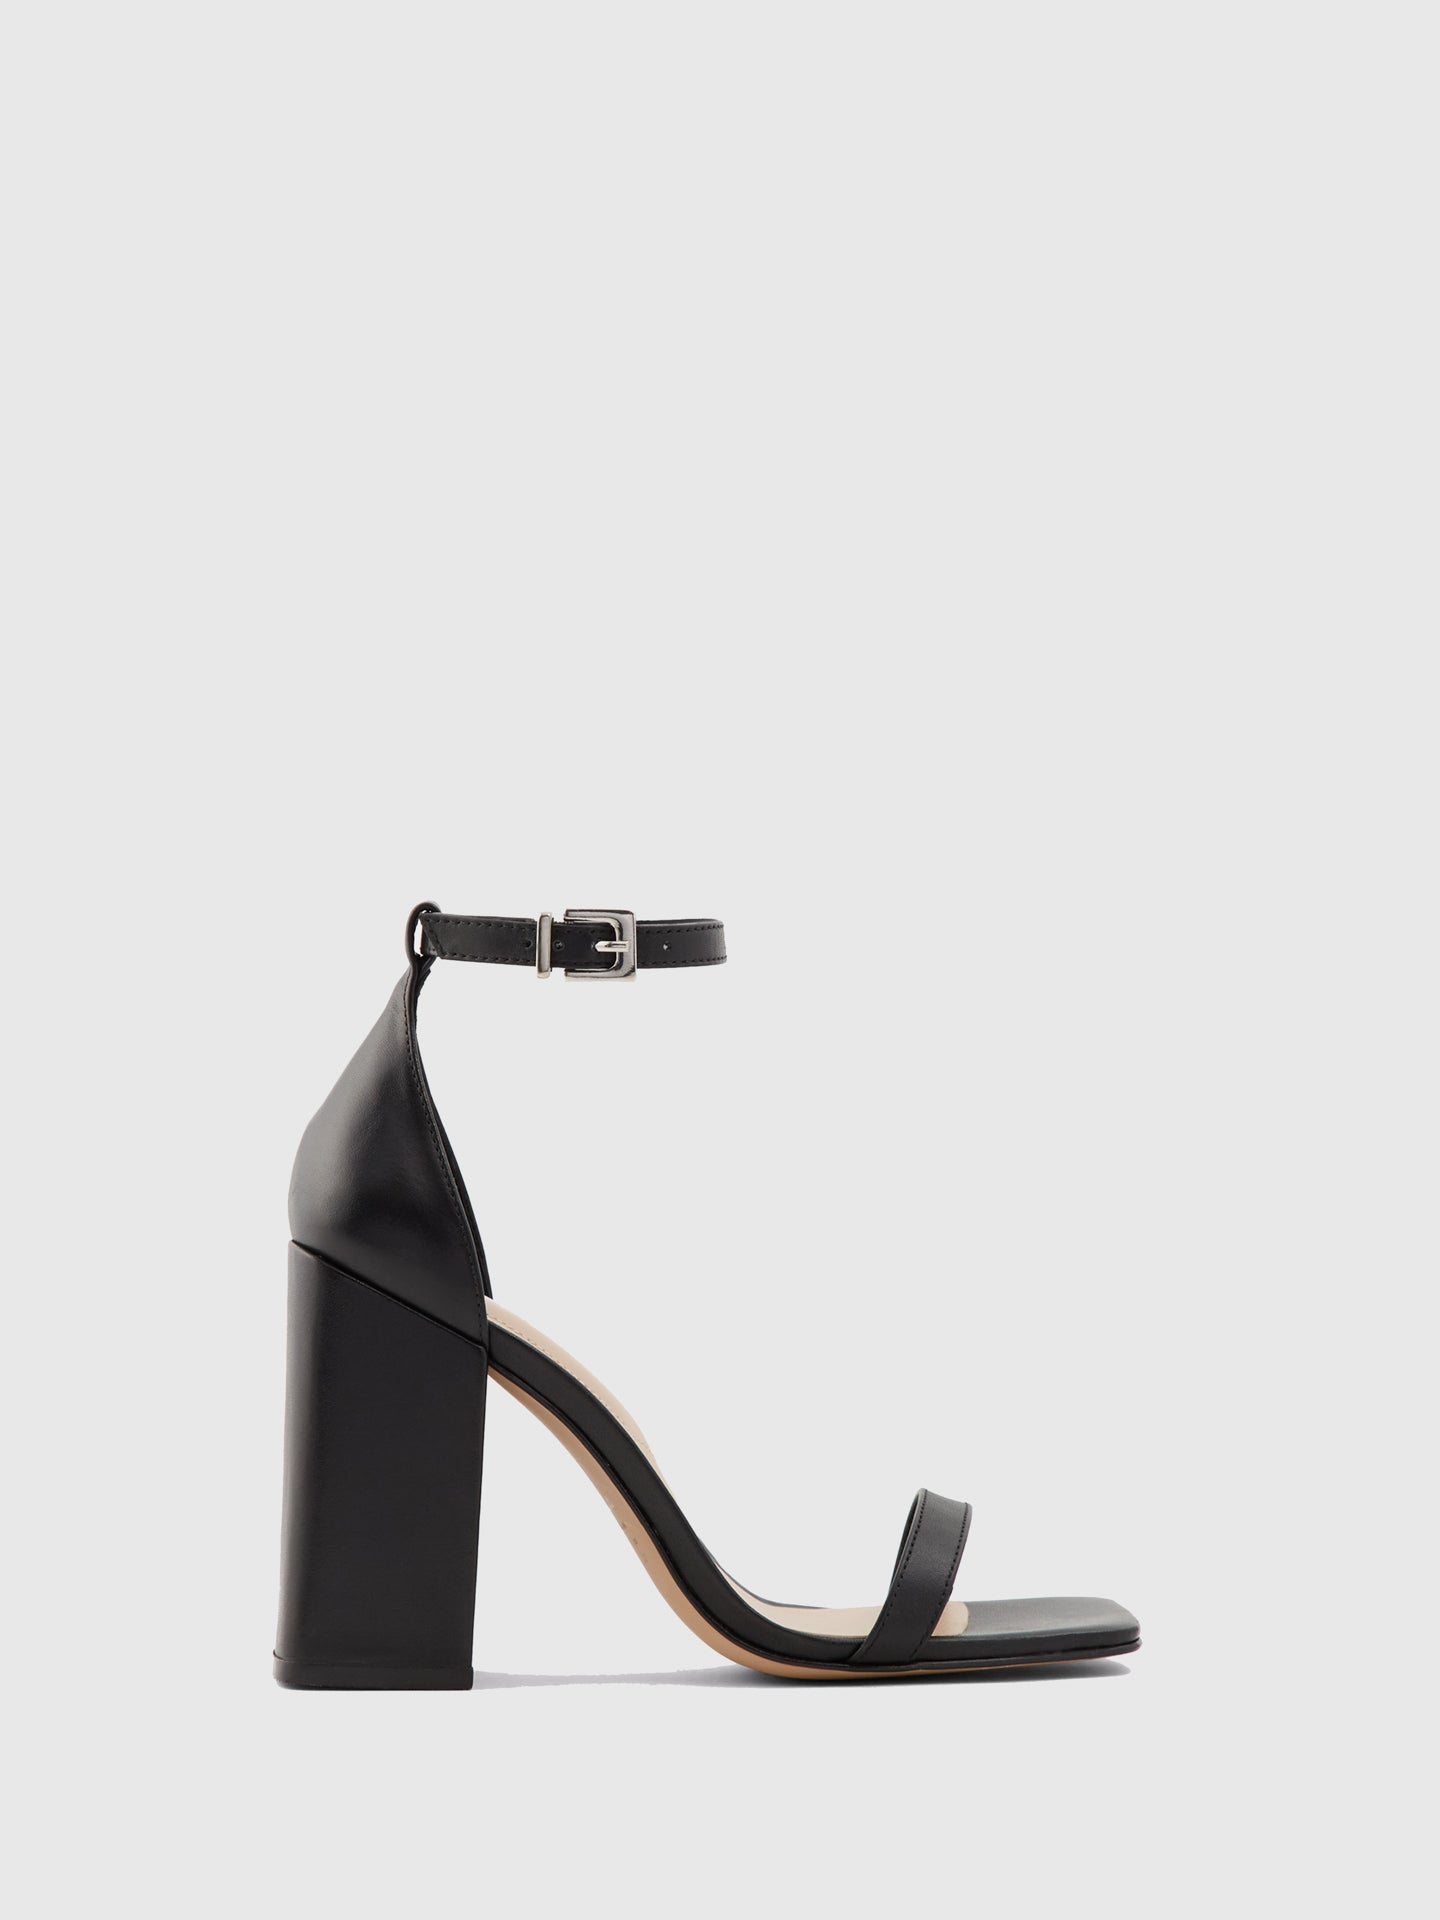 Aldo Black Leather Chunky Heel Sandals